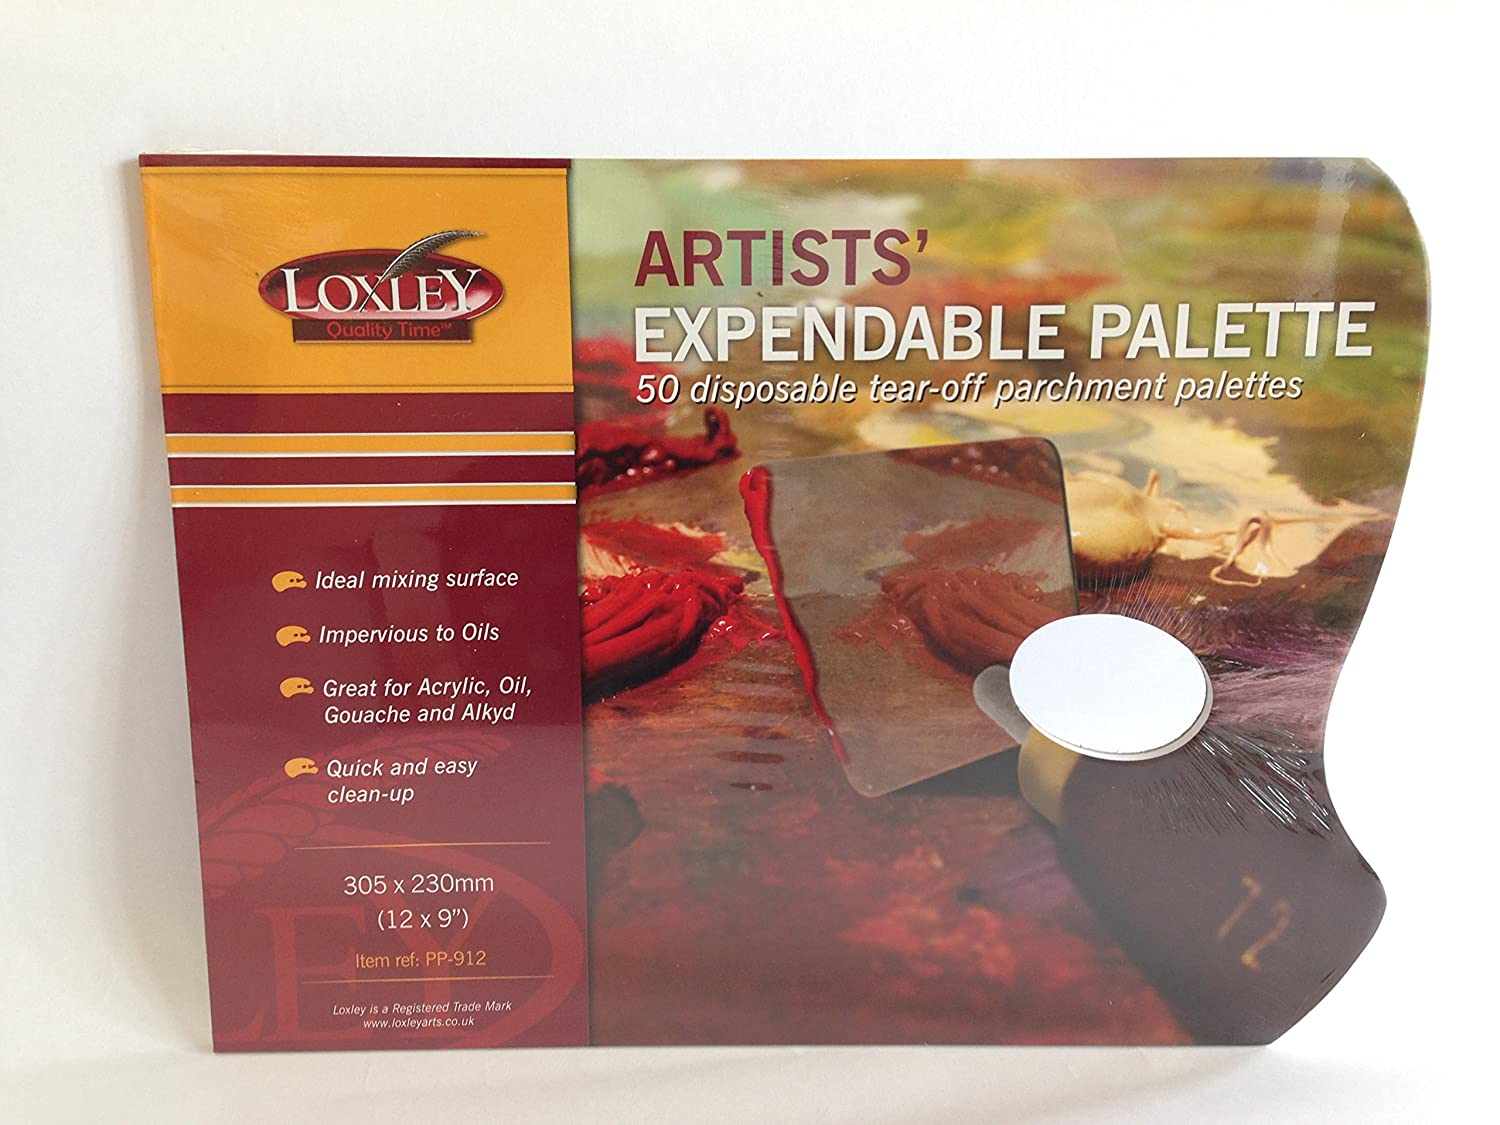 Loxley Artists expendable palette